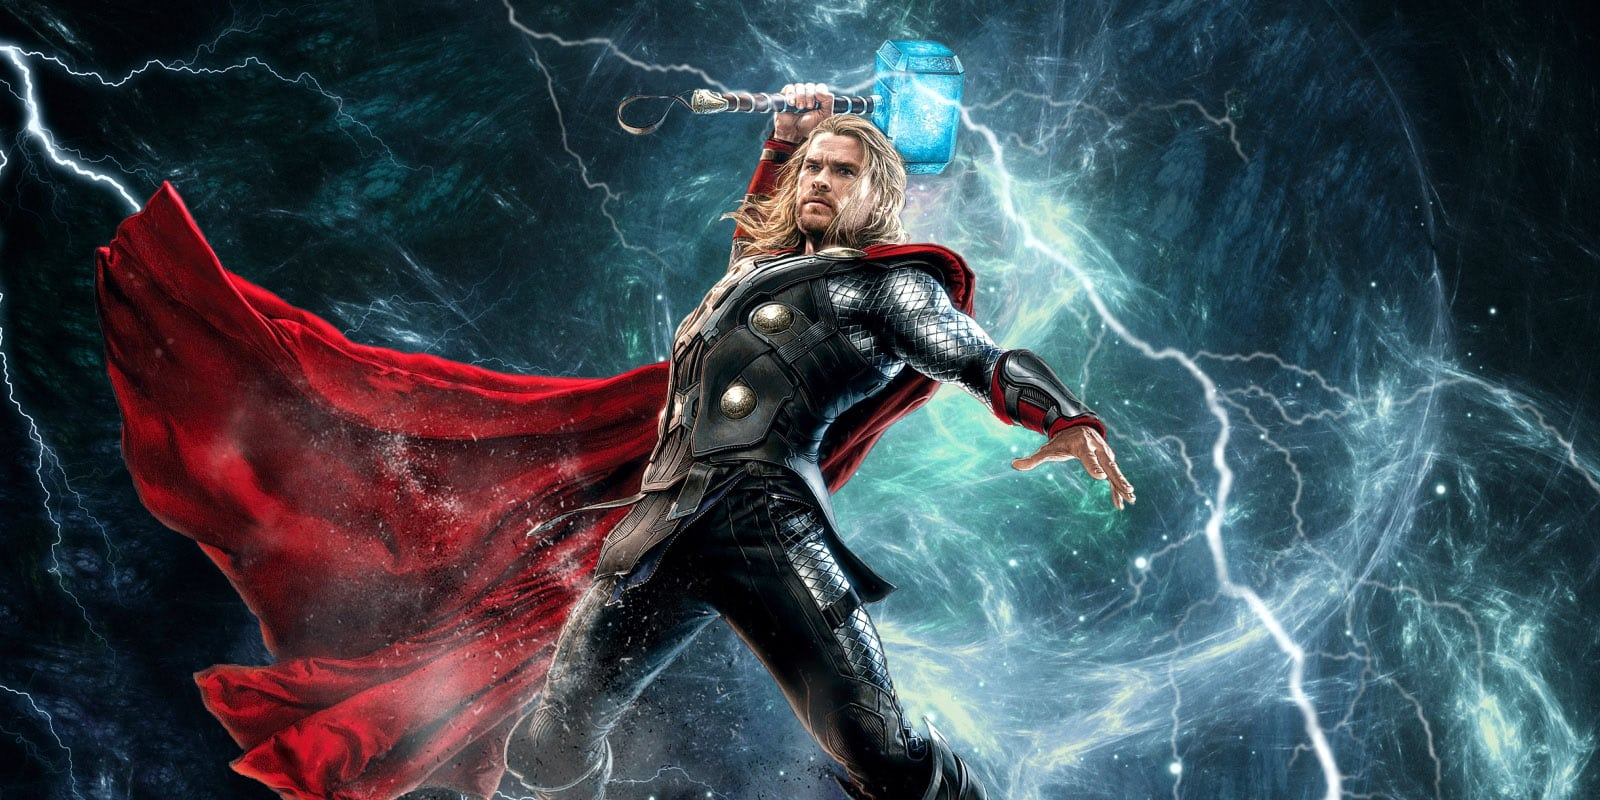 Chris-Hemsworth-Thor-Art-by-PC-Designs